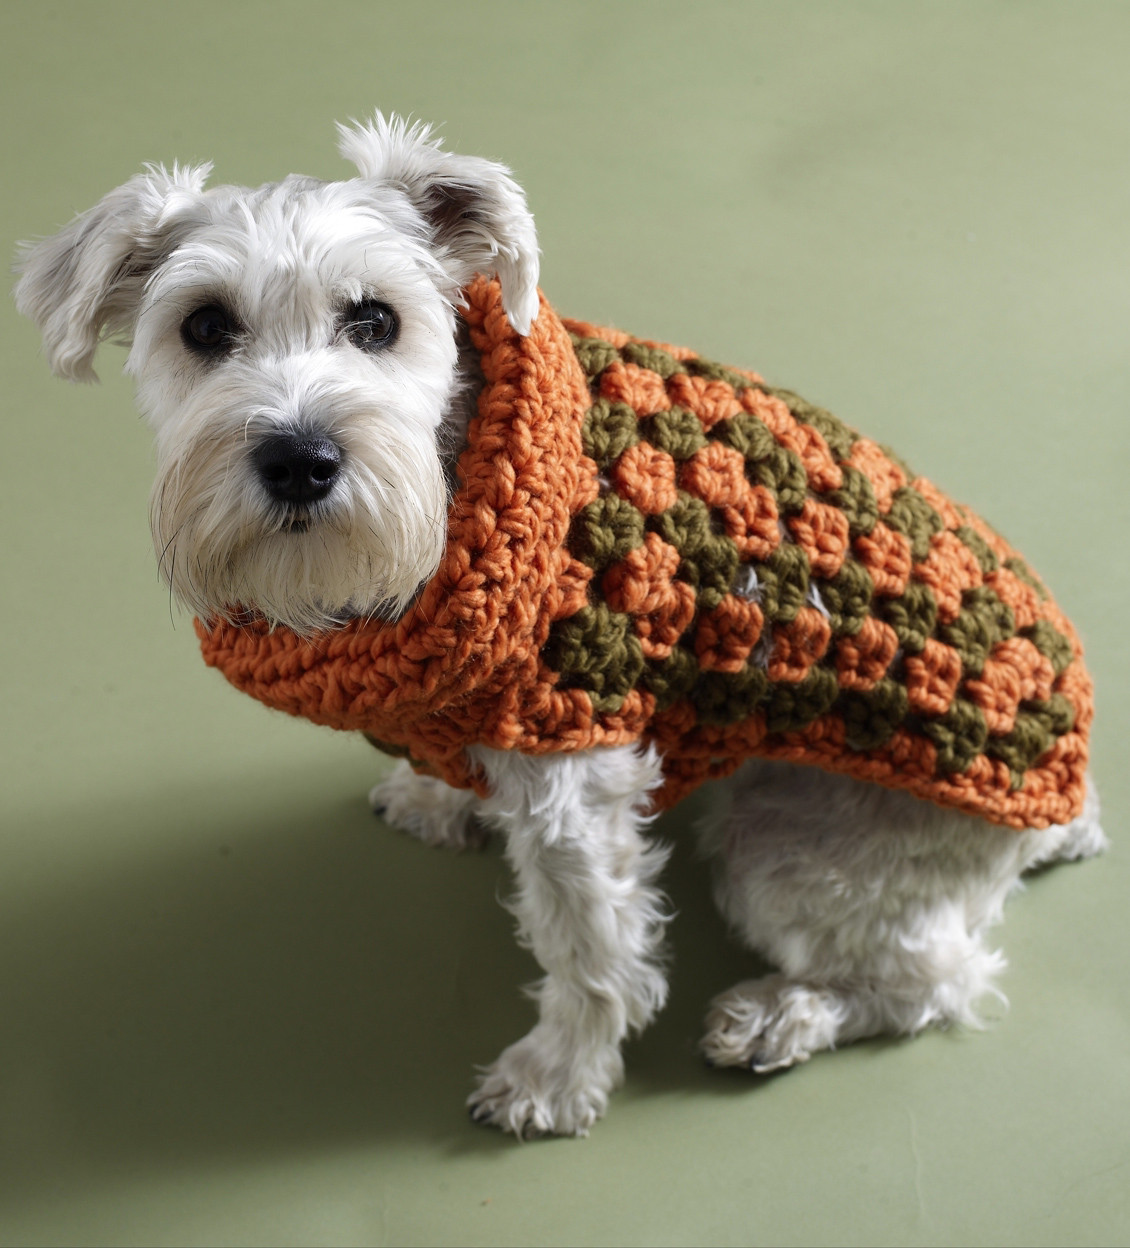 Crochet Dog Sweater with Legs Awesome Keep Your Dog Warm with A Crochet Dog Sweater Crochet Of Gorgeous 40 Images Crochet Dog Sweater with Legs